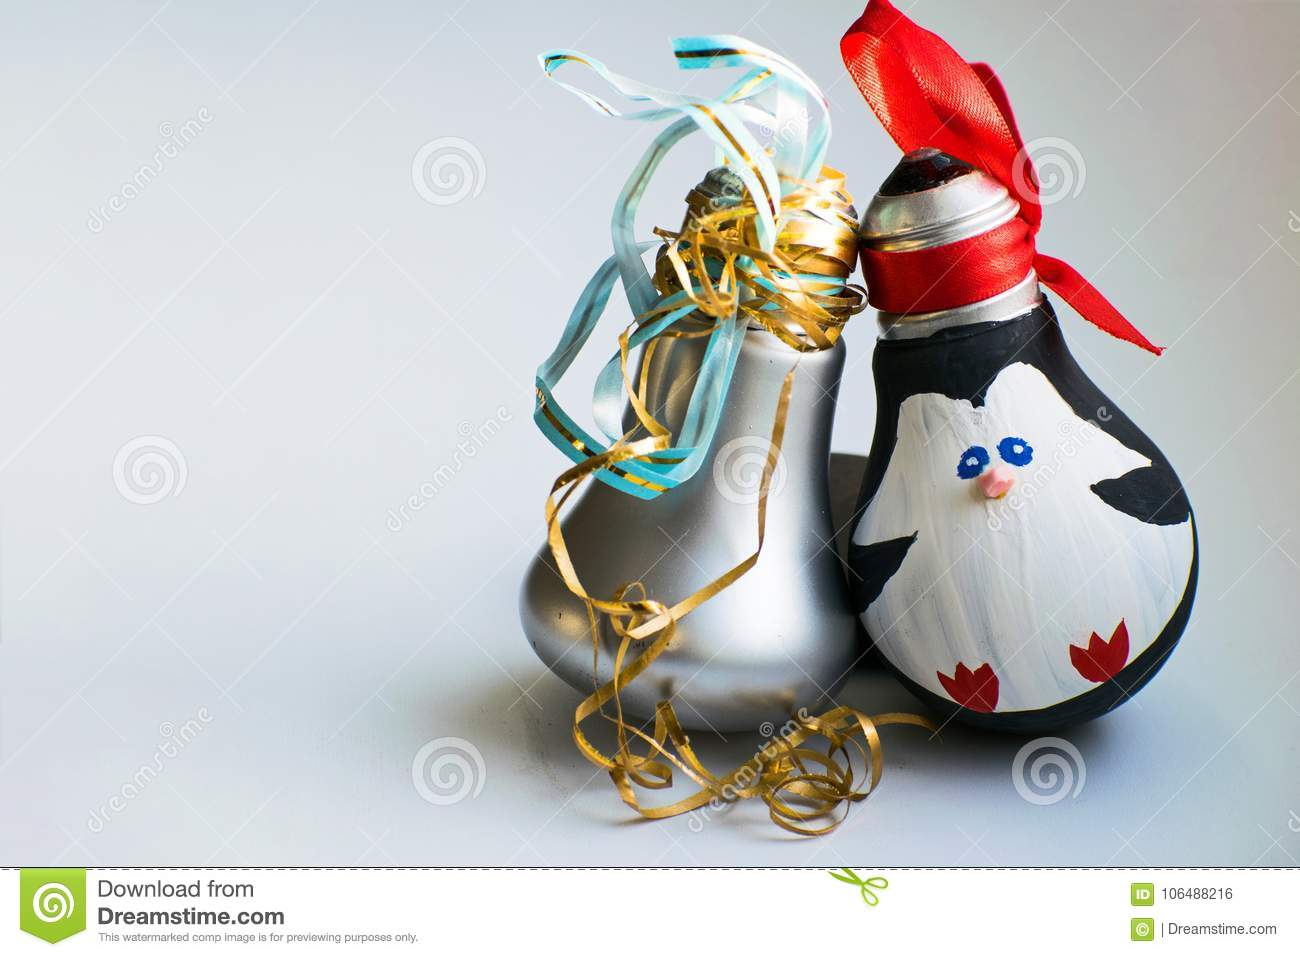 Christmas Decorations New Year S Toys Penguin And Pear On White Background Merry Christmas And Happy New Year Stock Photo Image Of Celebration Holiday 106488216